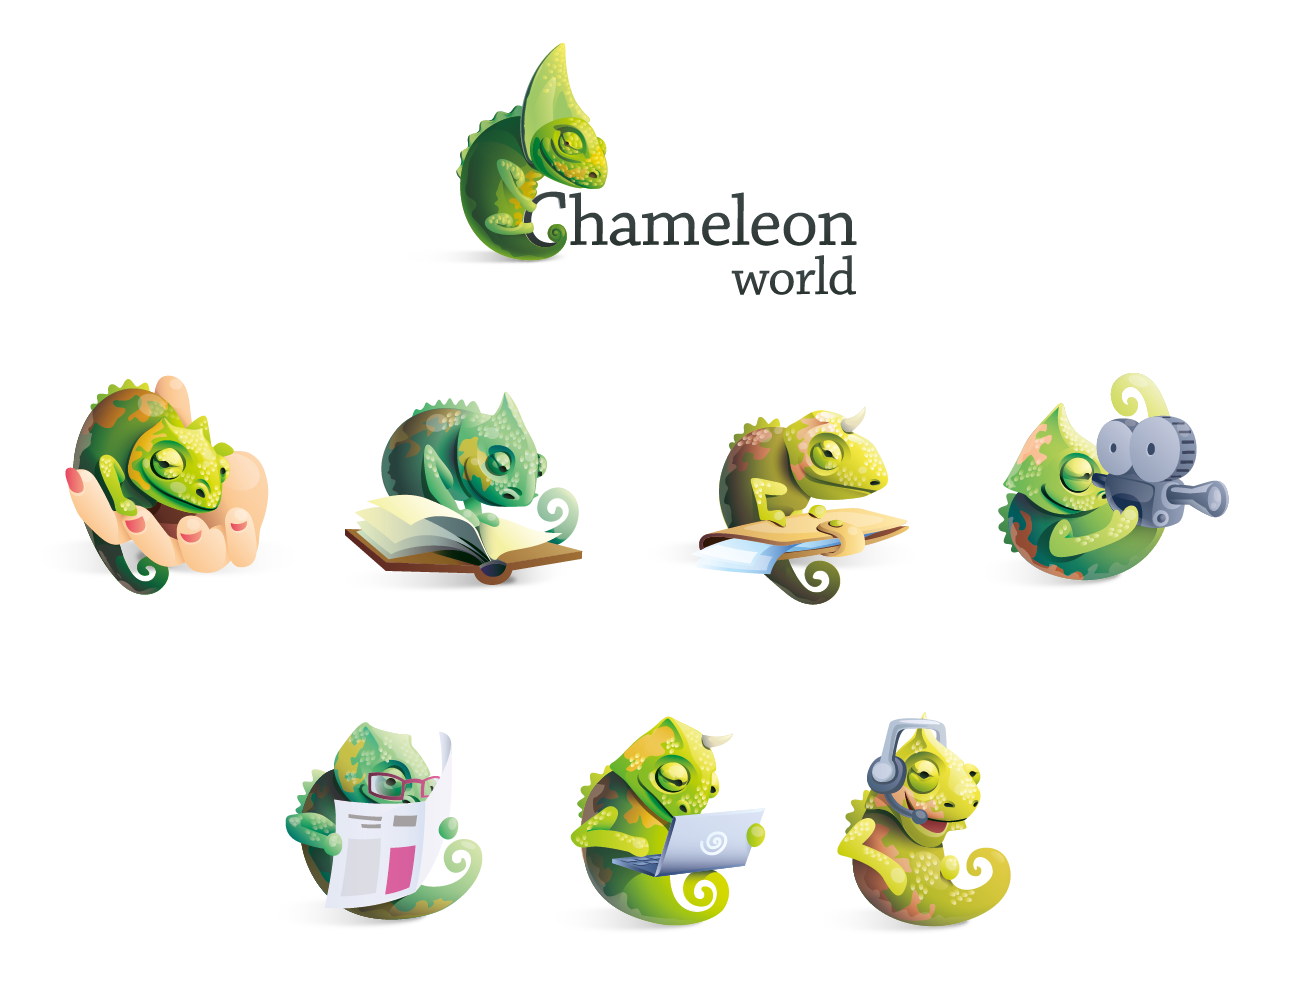 Chameleon-World-1